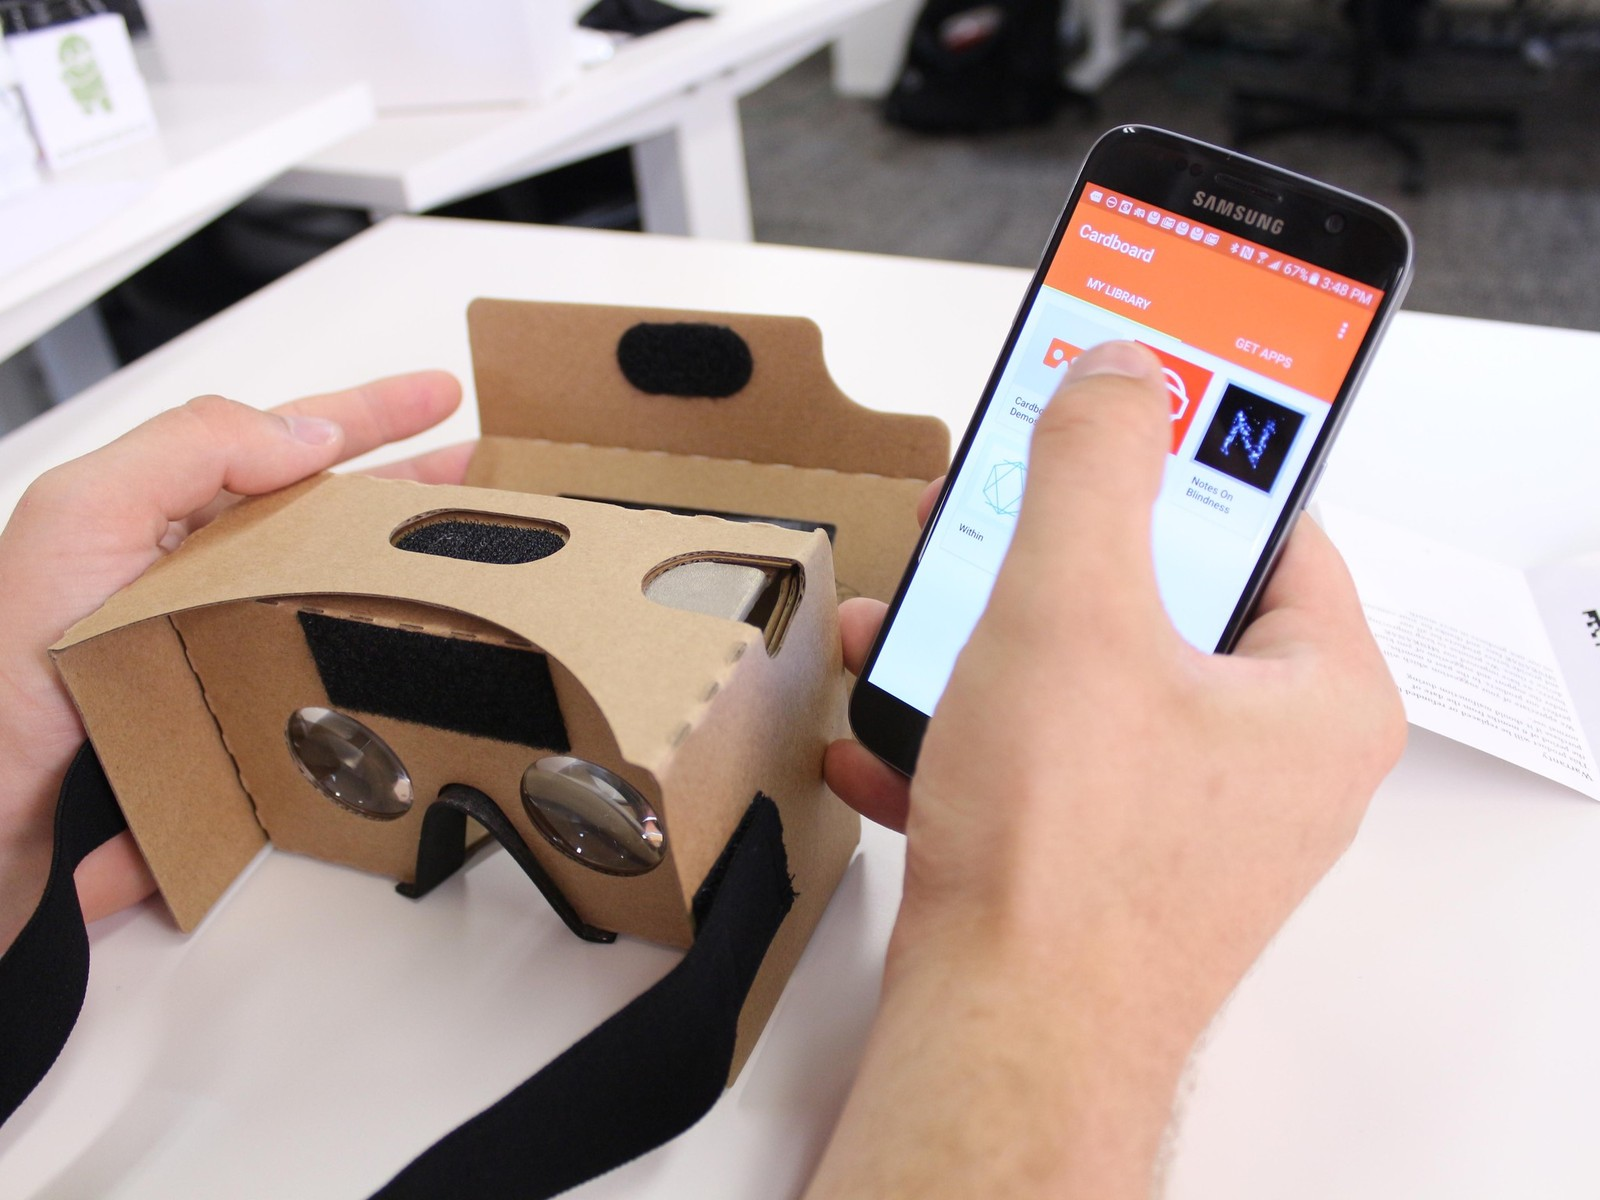 Next, load up a VR experience or game on your phone.